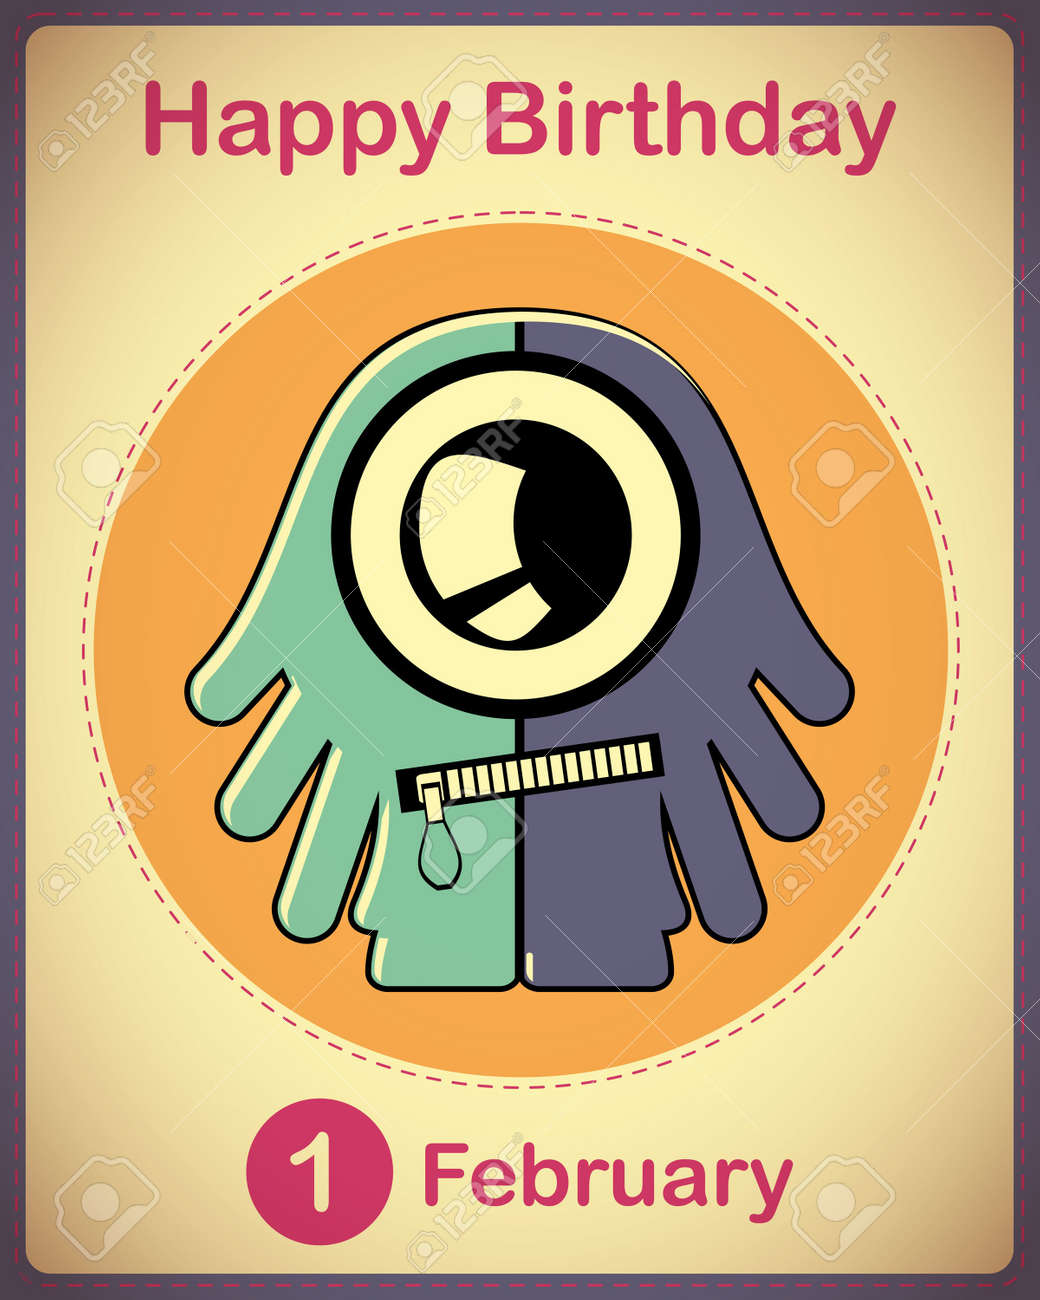 Happy birthday card with cute cartoon monster Stock Vector - 17577933